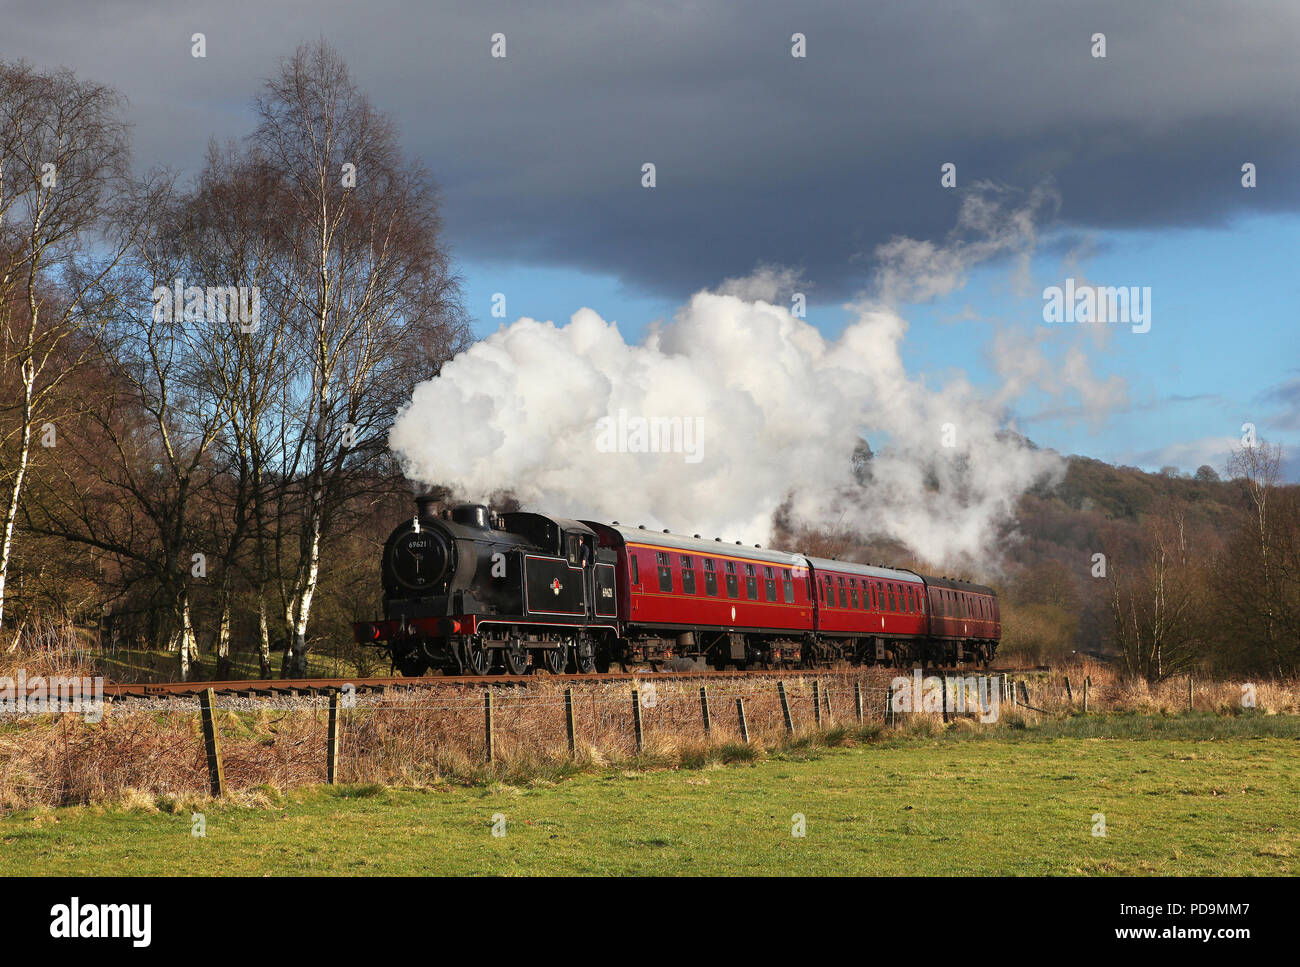 69621 nr Cheddleton  on the Churnet Valley Railway 21.2.15 - Stock Image